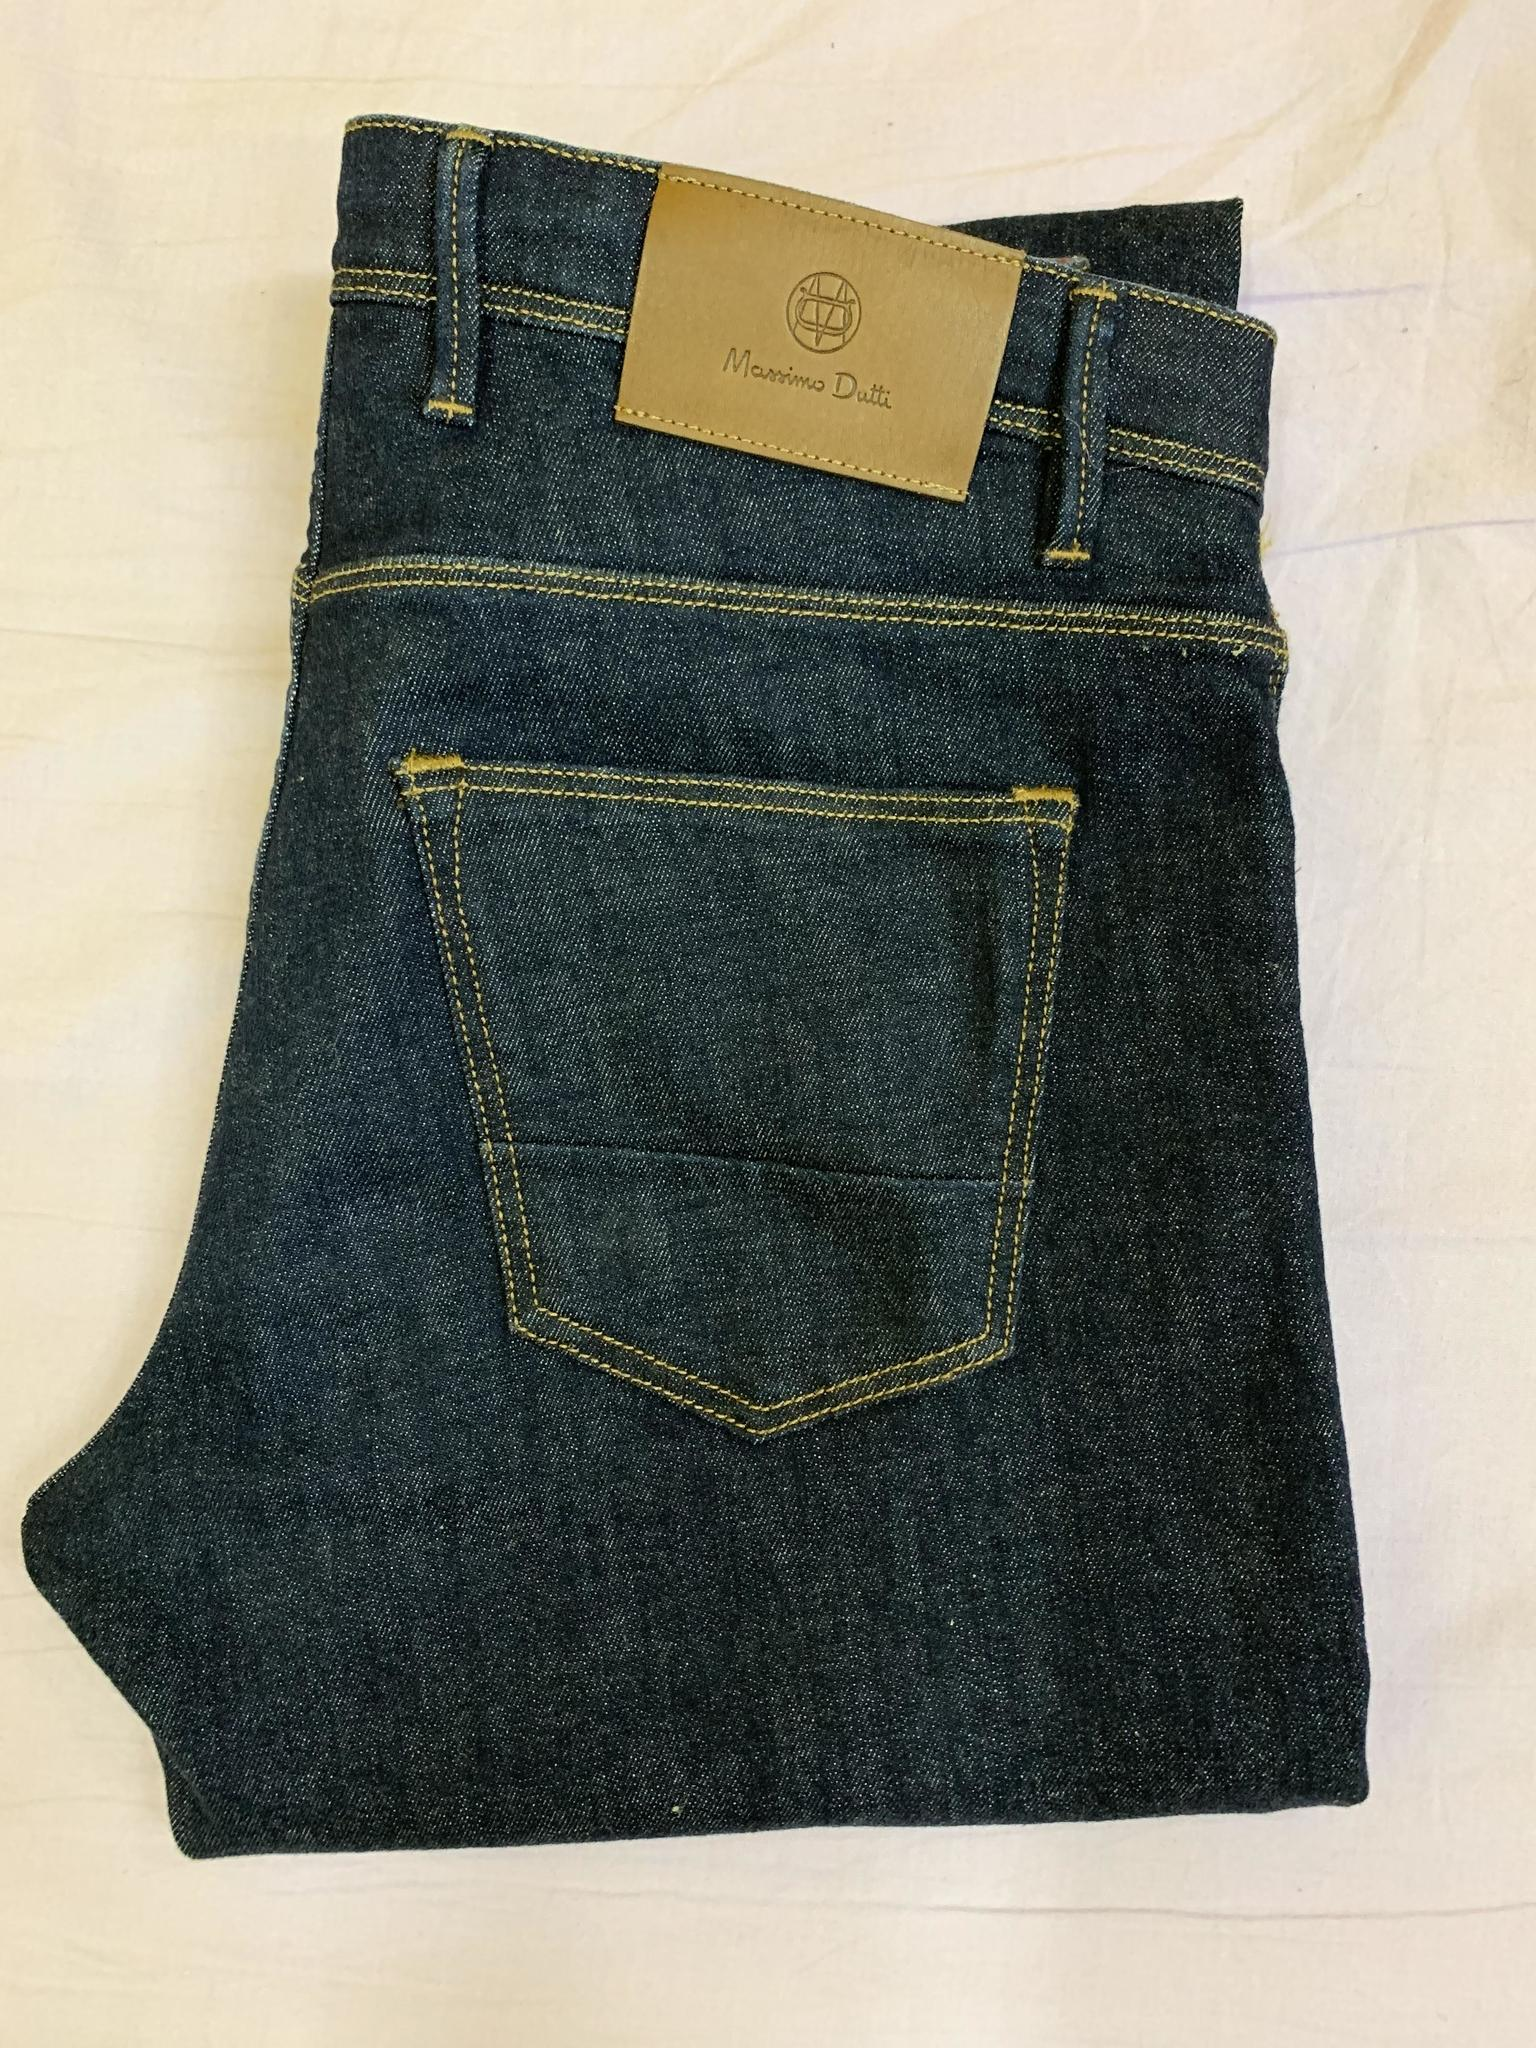 Brand new Massimo Dutti Jeans for sale